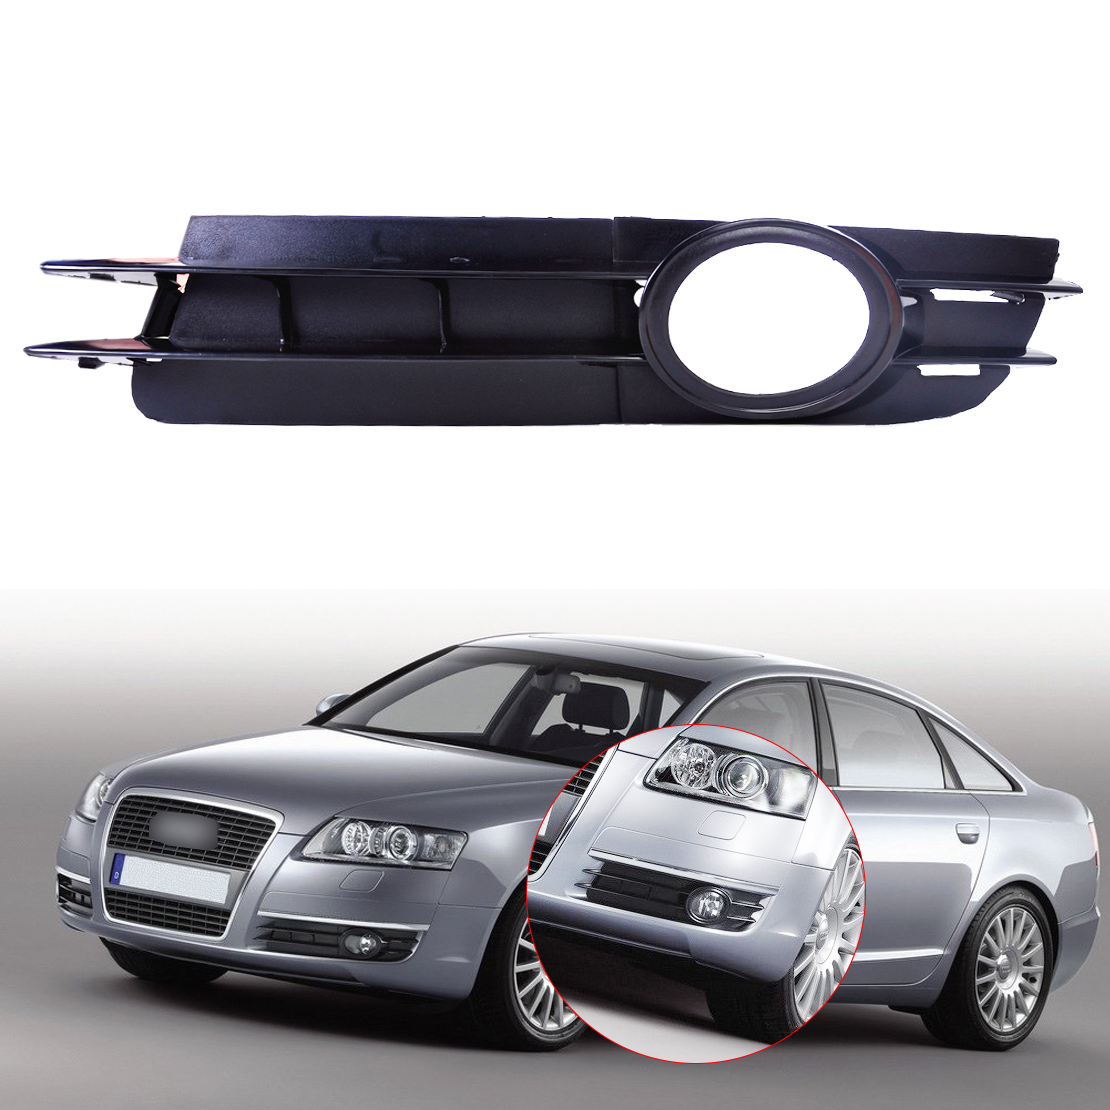 DWCX 4F0807681A Front Left Bumper Fog Light Lamp Grill Grille For Audi A6 / A6 Quattro C6 2005 2006 2007 2008 dwcx 81210 06050 81210 0d040 2pcs front fog light lamp 2pcs grille cover bezel for toyota corolla 2007 2008 2009 2010